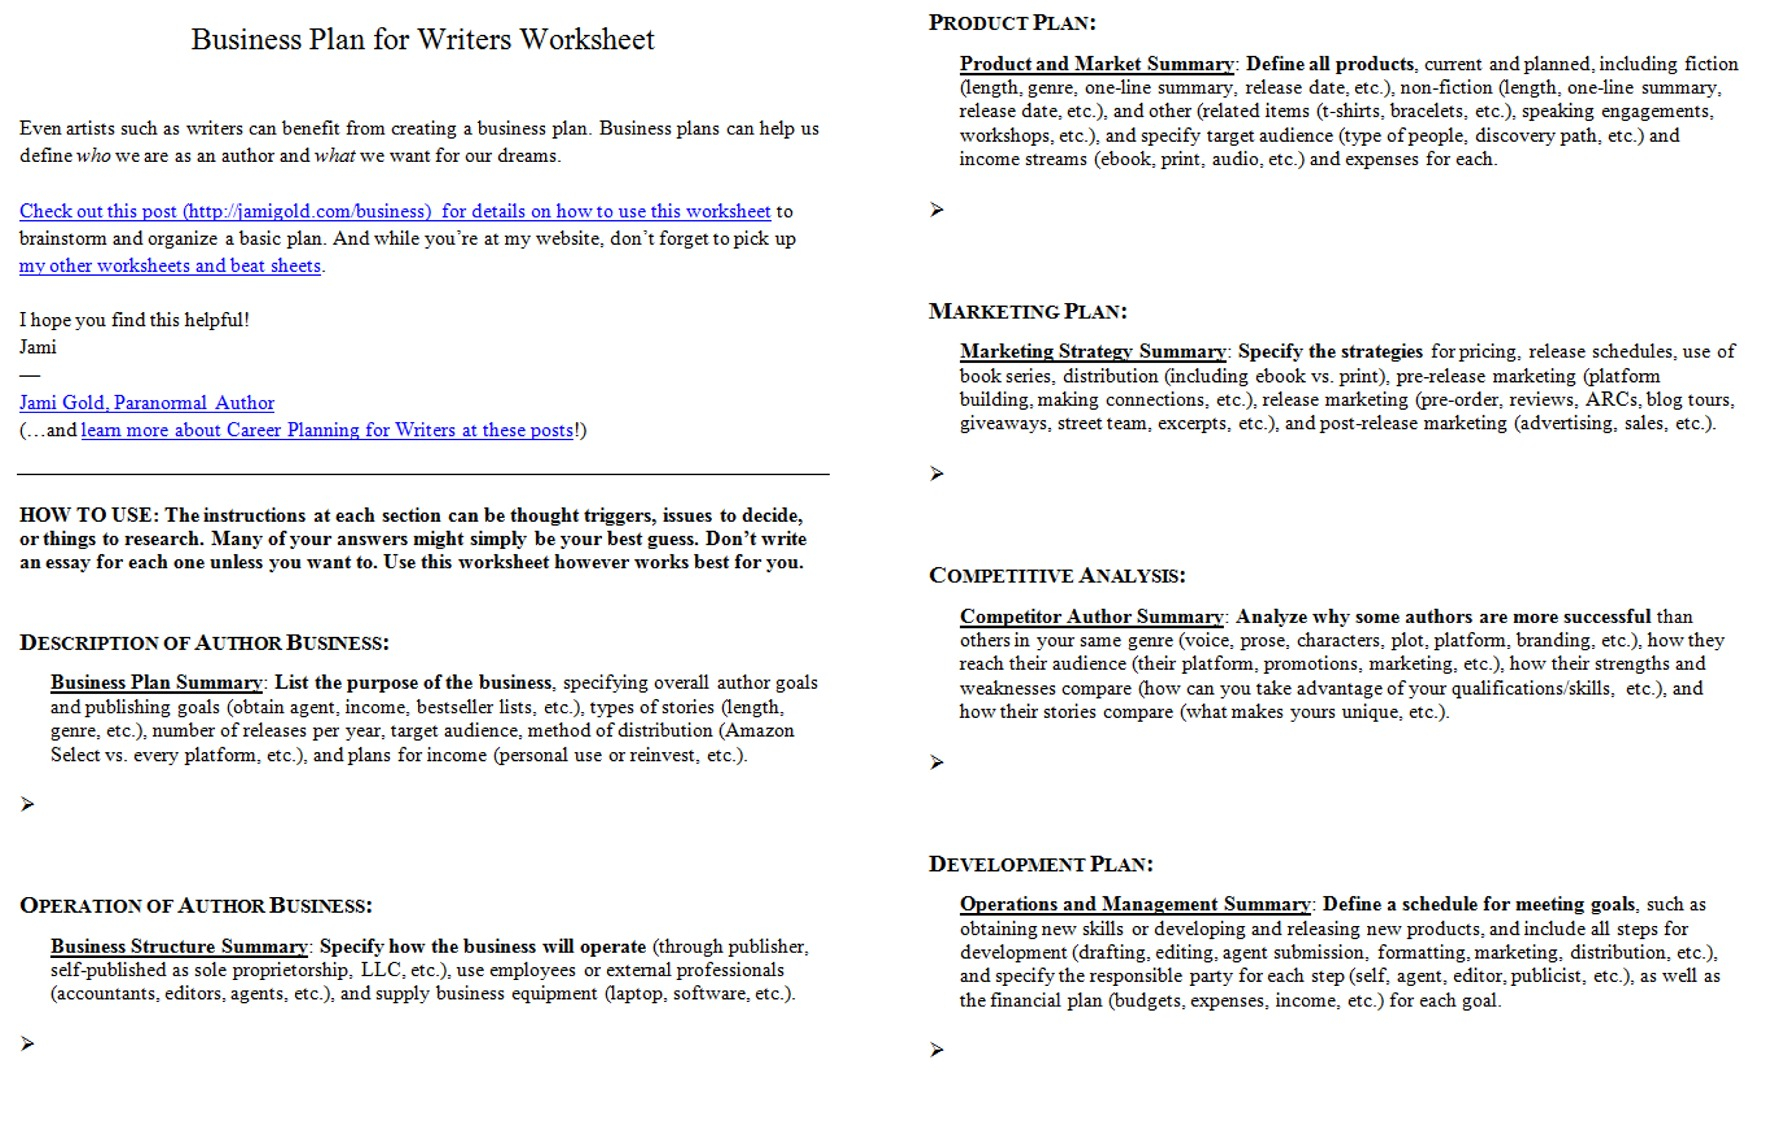 Aldiablosus  Sweet Worksheets For Writers  Jami Gold Paranormal Author With Excellent Screen Shot Of Both Pages Of The Business Plan For Writers Worksheet With Amazing Language Arts Worksheets Grade  Also Year  Maths Worksheets Printable In Addition Reported Speech Worksheets And Bigger And Smaller Number Worksheets As Well As English Worksheet For Grade  Additionally Animals And Their Babies Worksheet Matching From Jamigoldcom With Aldiablosus  Excellent Worksheets For Writers  Jami Gold Paranormal Author With Amazing Screen Shot Of Both Pages Of The Business Plan For Writers Worksheet And Sweet Language Arts Worksheets Grade  Also Year  Maths Worksheets Printable In Addition Reported Speech Worksheets From Jamigoldcom